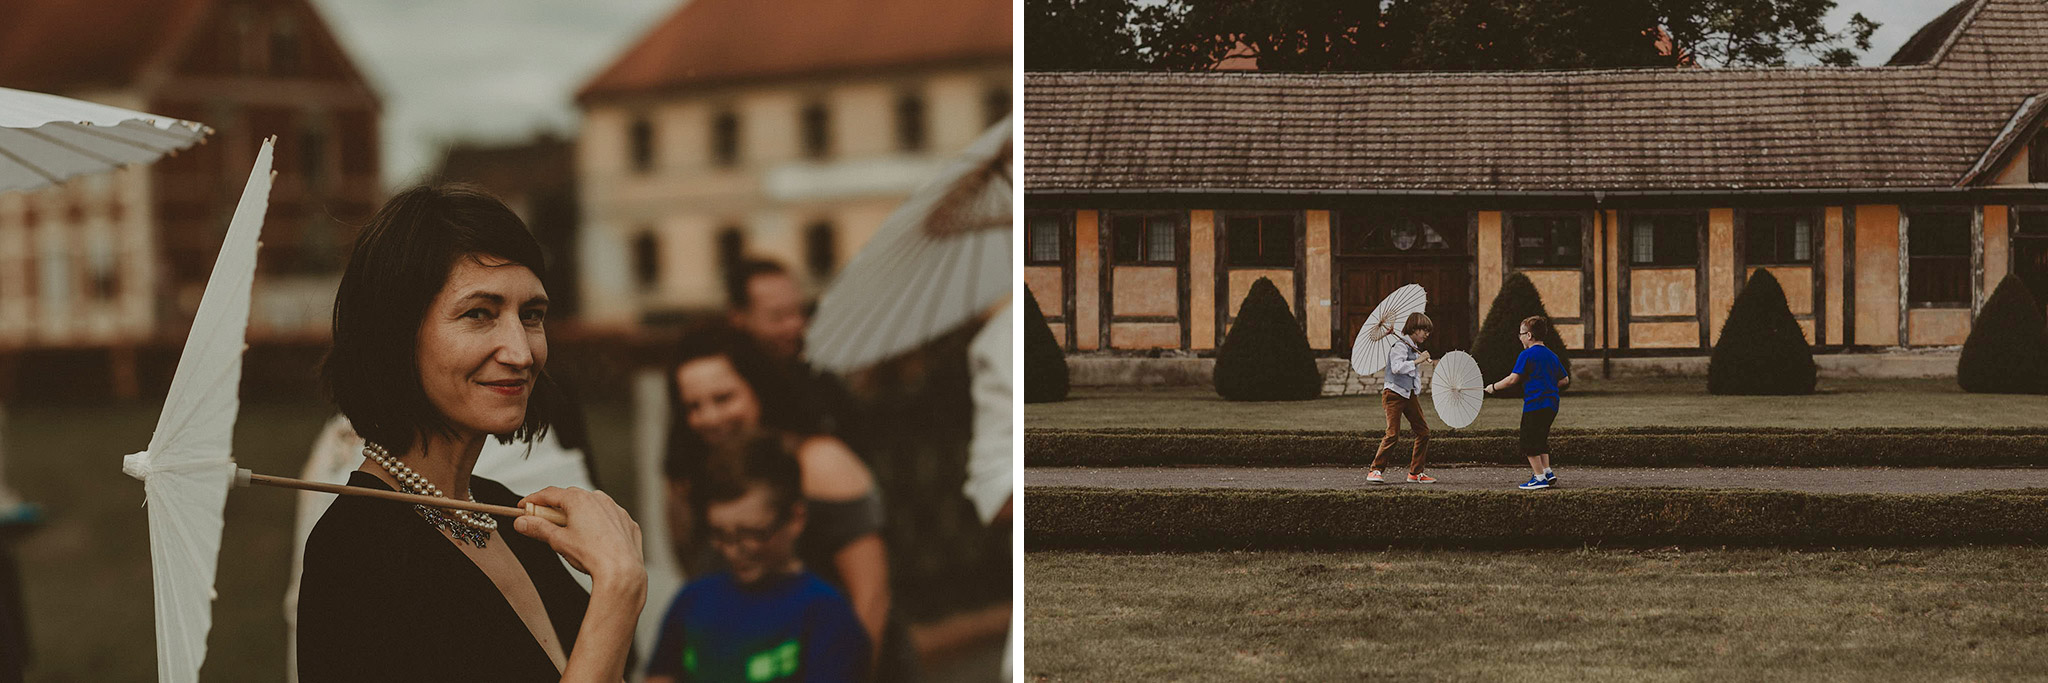 newolreans-wedding-germany